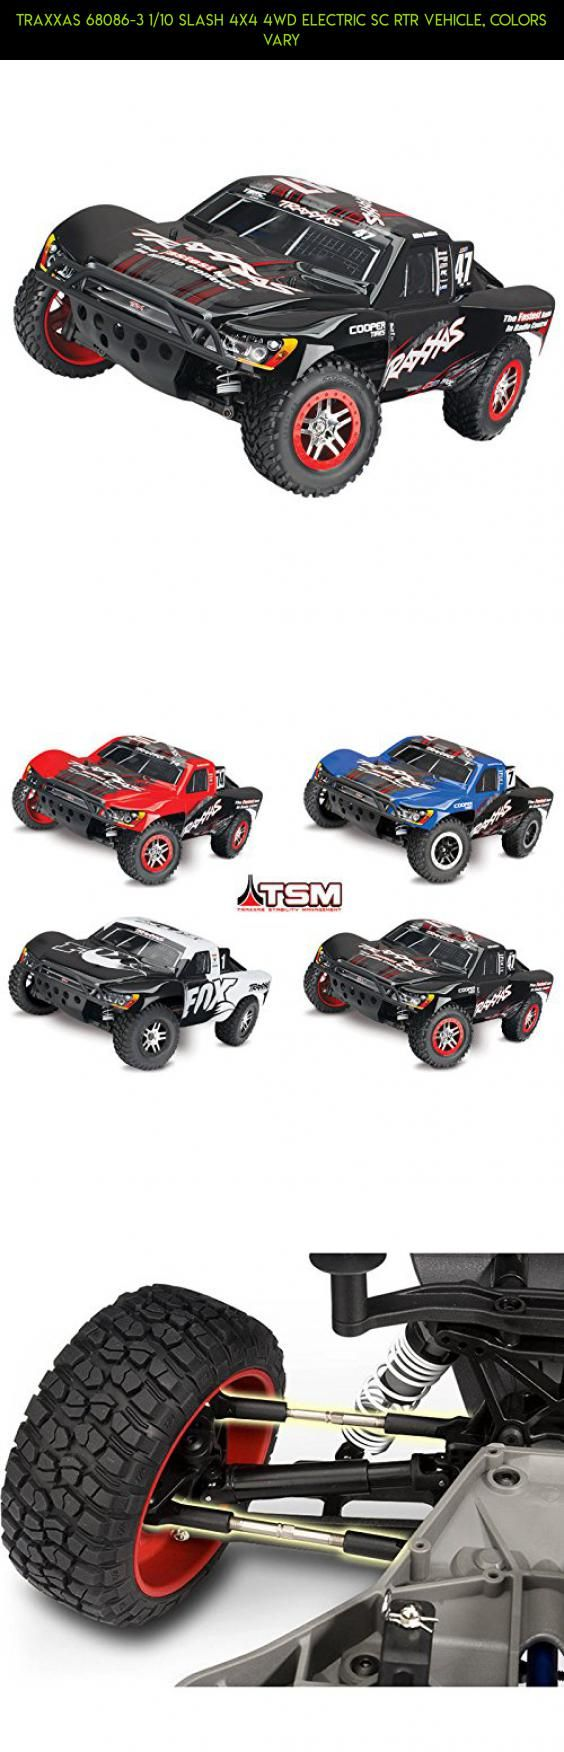 Traxxas 68086 3 1 10 slash 4x4 4wd electric sc rtr vehicle colors